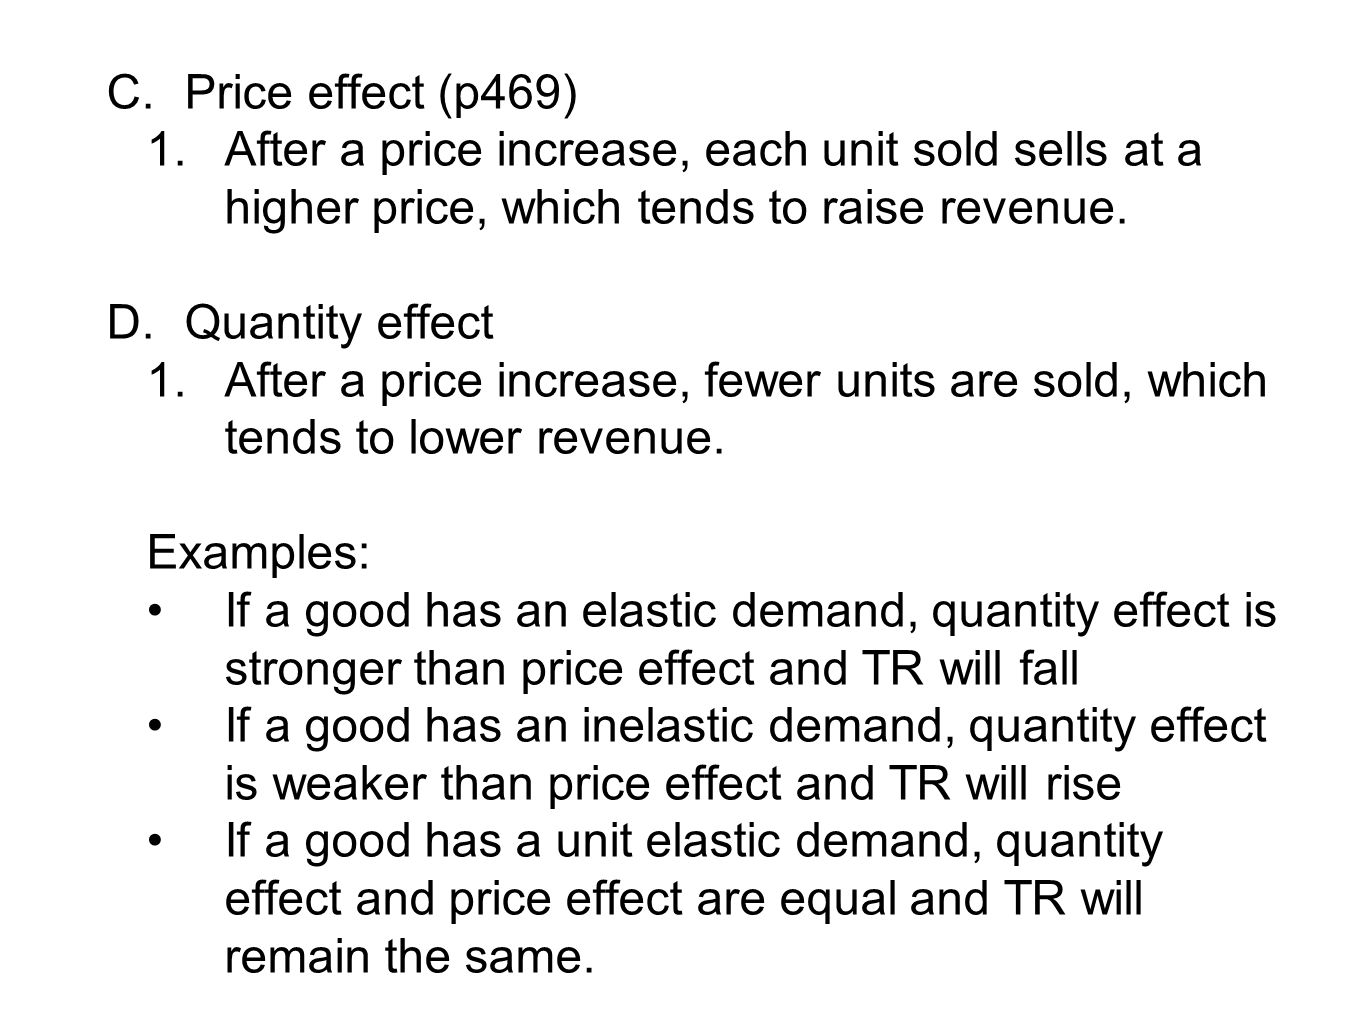 Price effect (p469) After a price increase, each unit sold sells at a higher price, which tends to raise revenue.